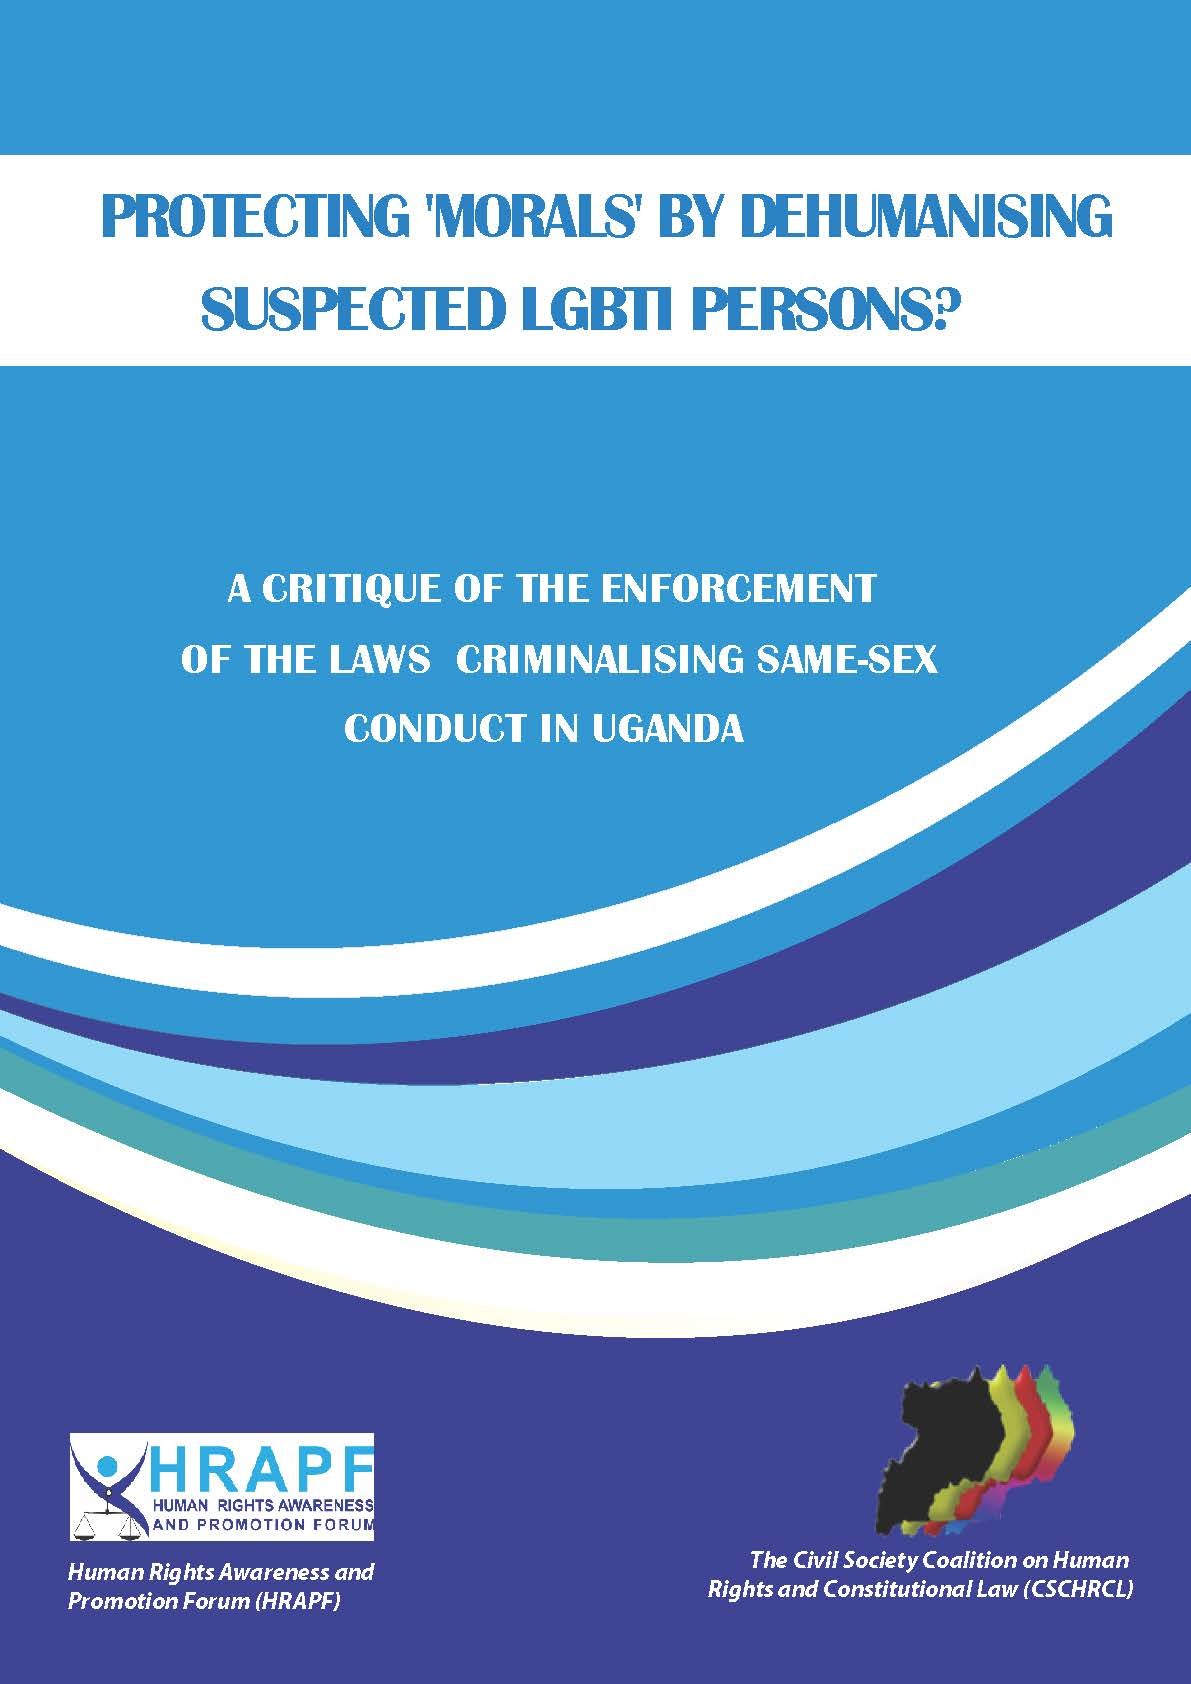 Implementation of Section 145 of Uganda's Penal Code